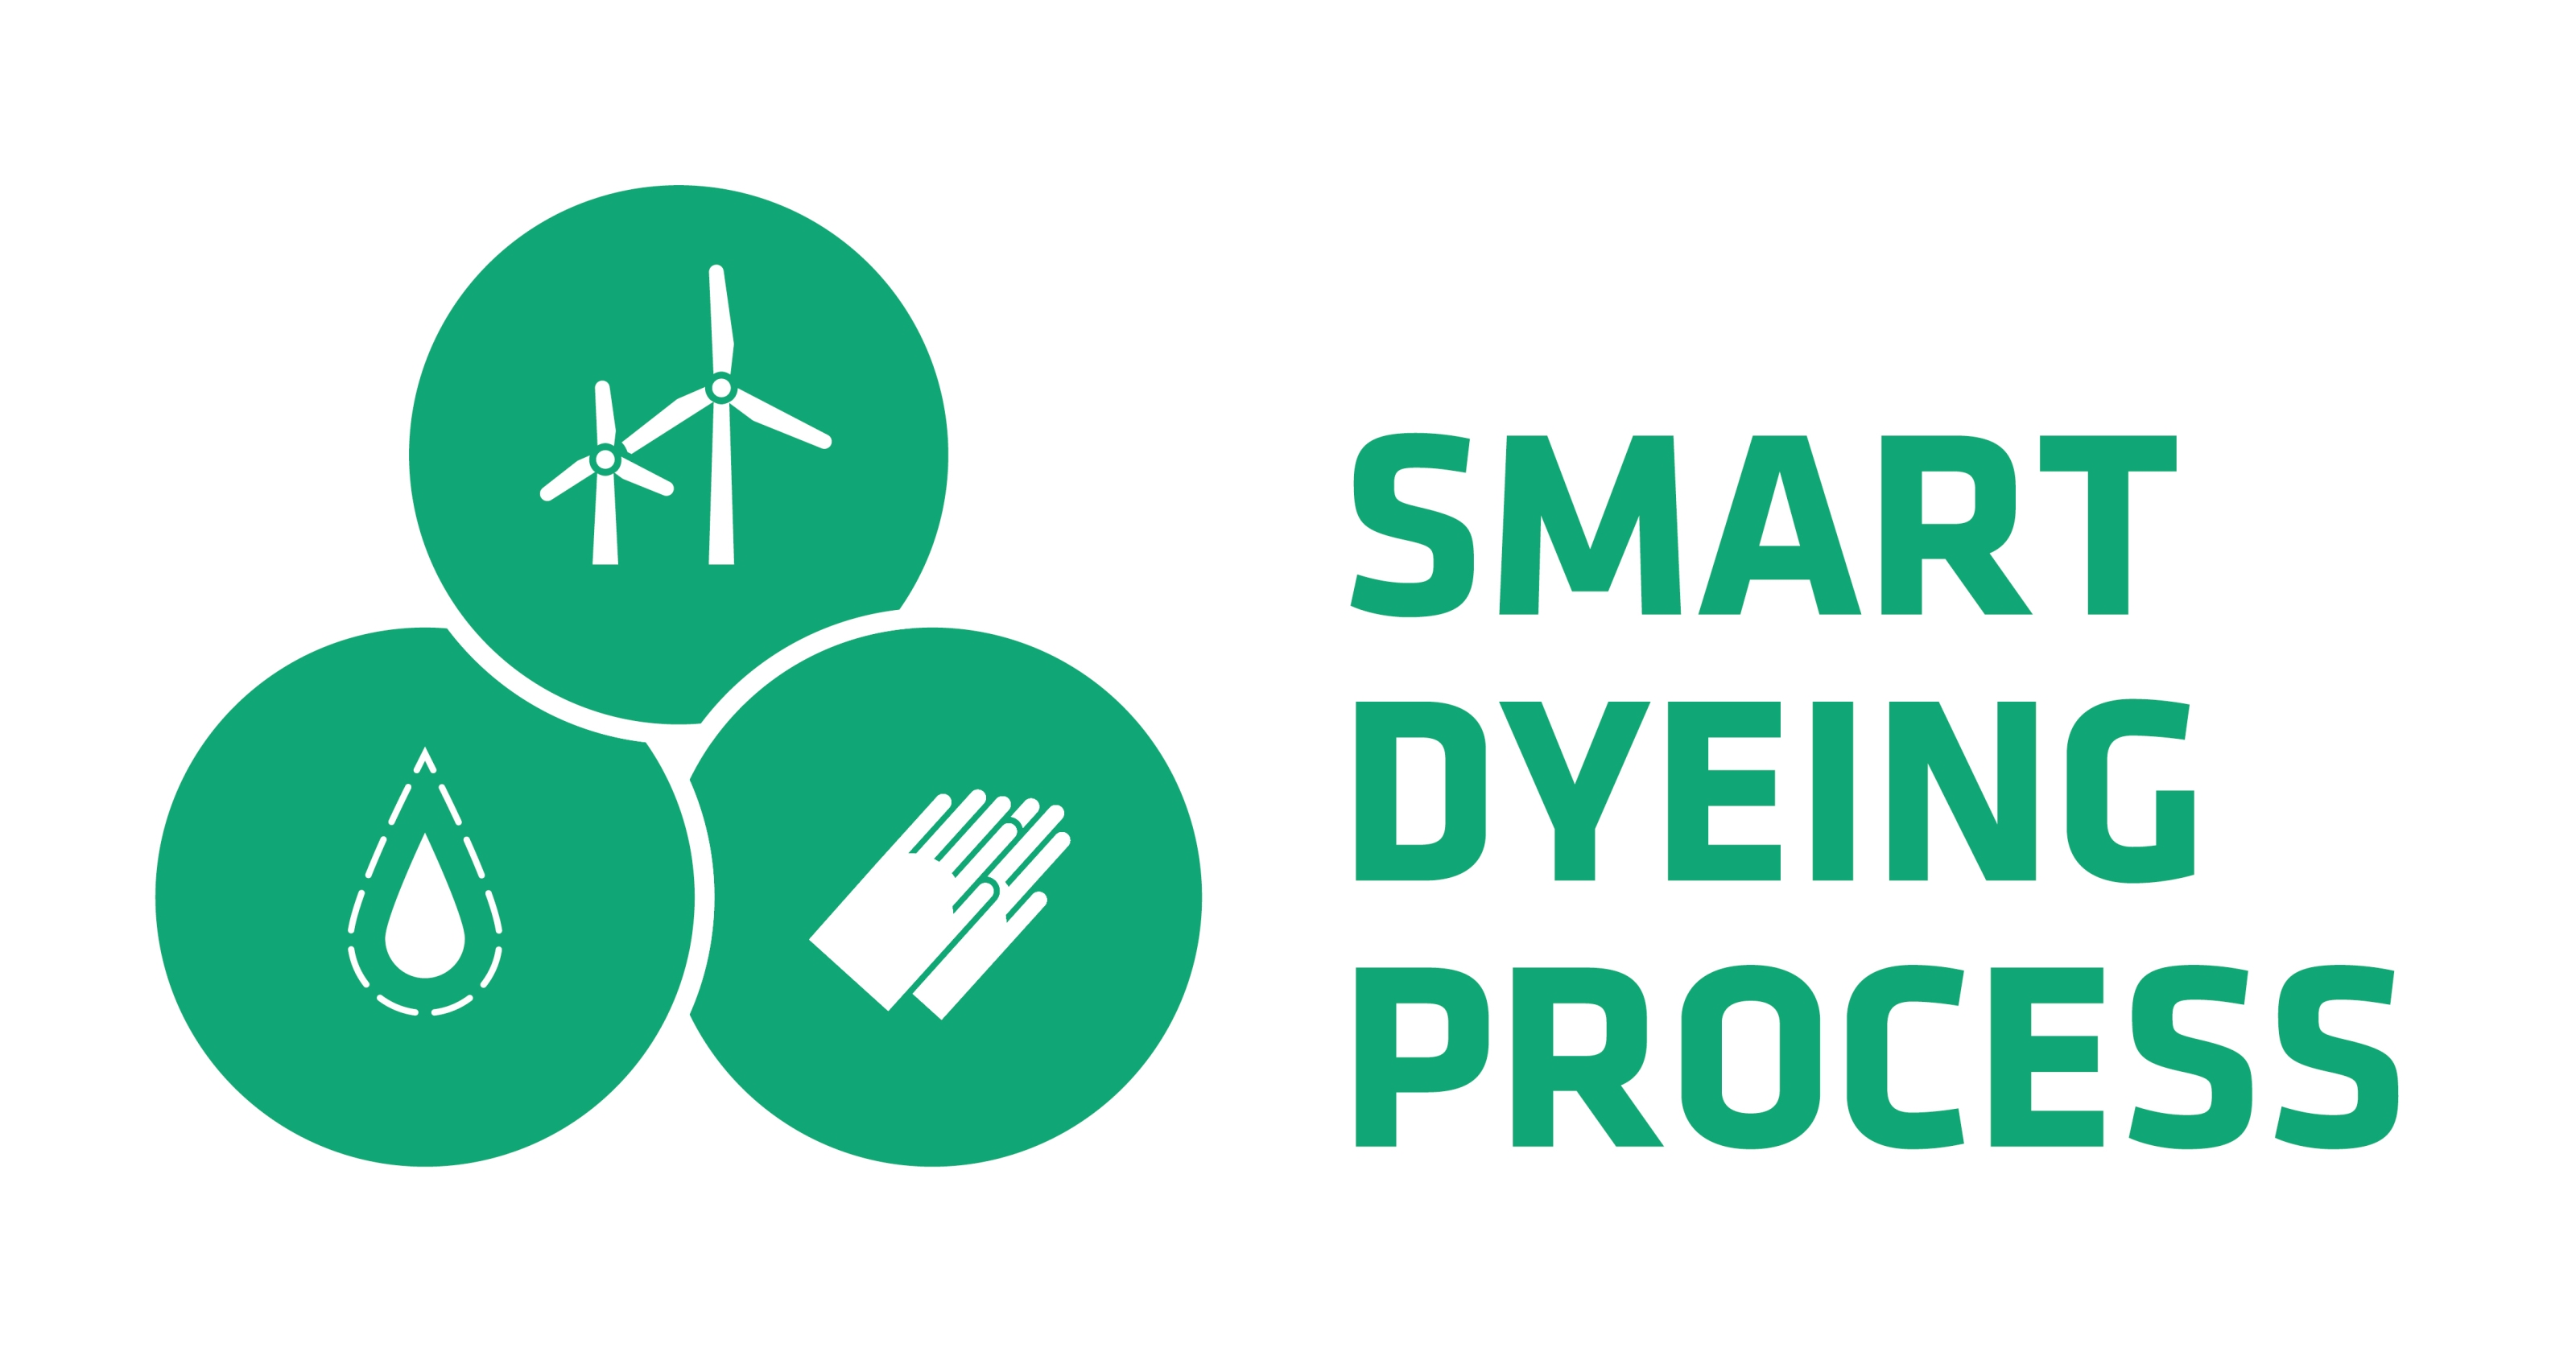 Smart Dyeing Process